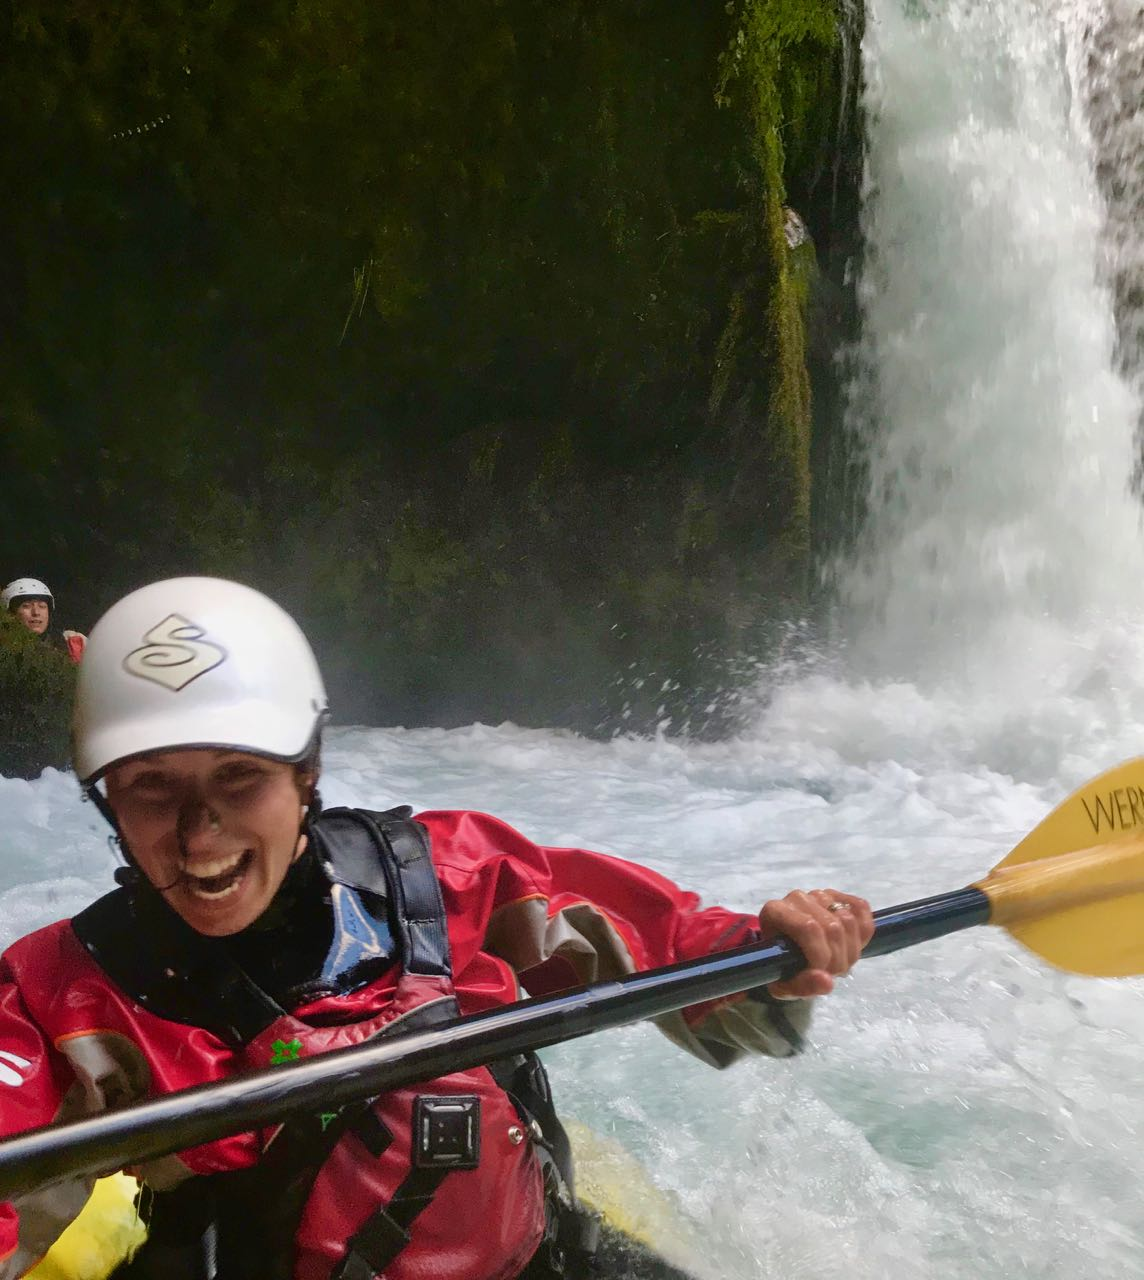 whitewater kayak chiles upper palguin waterfalls